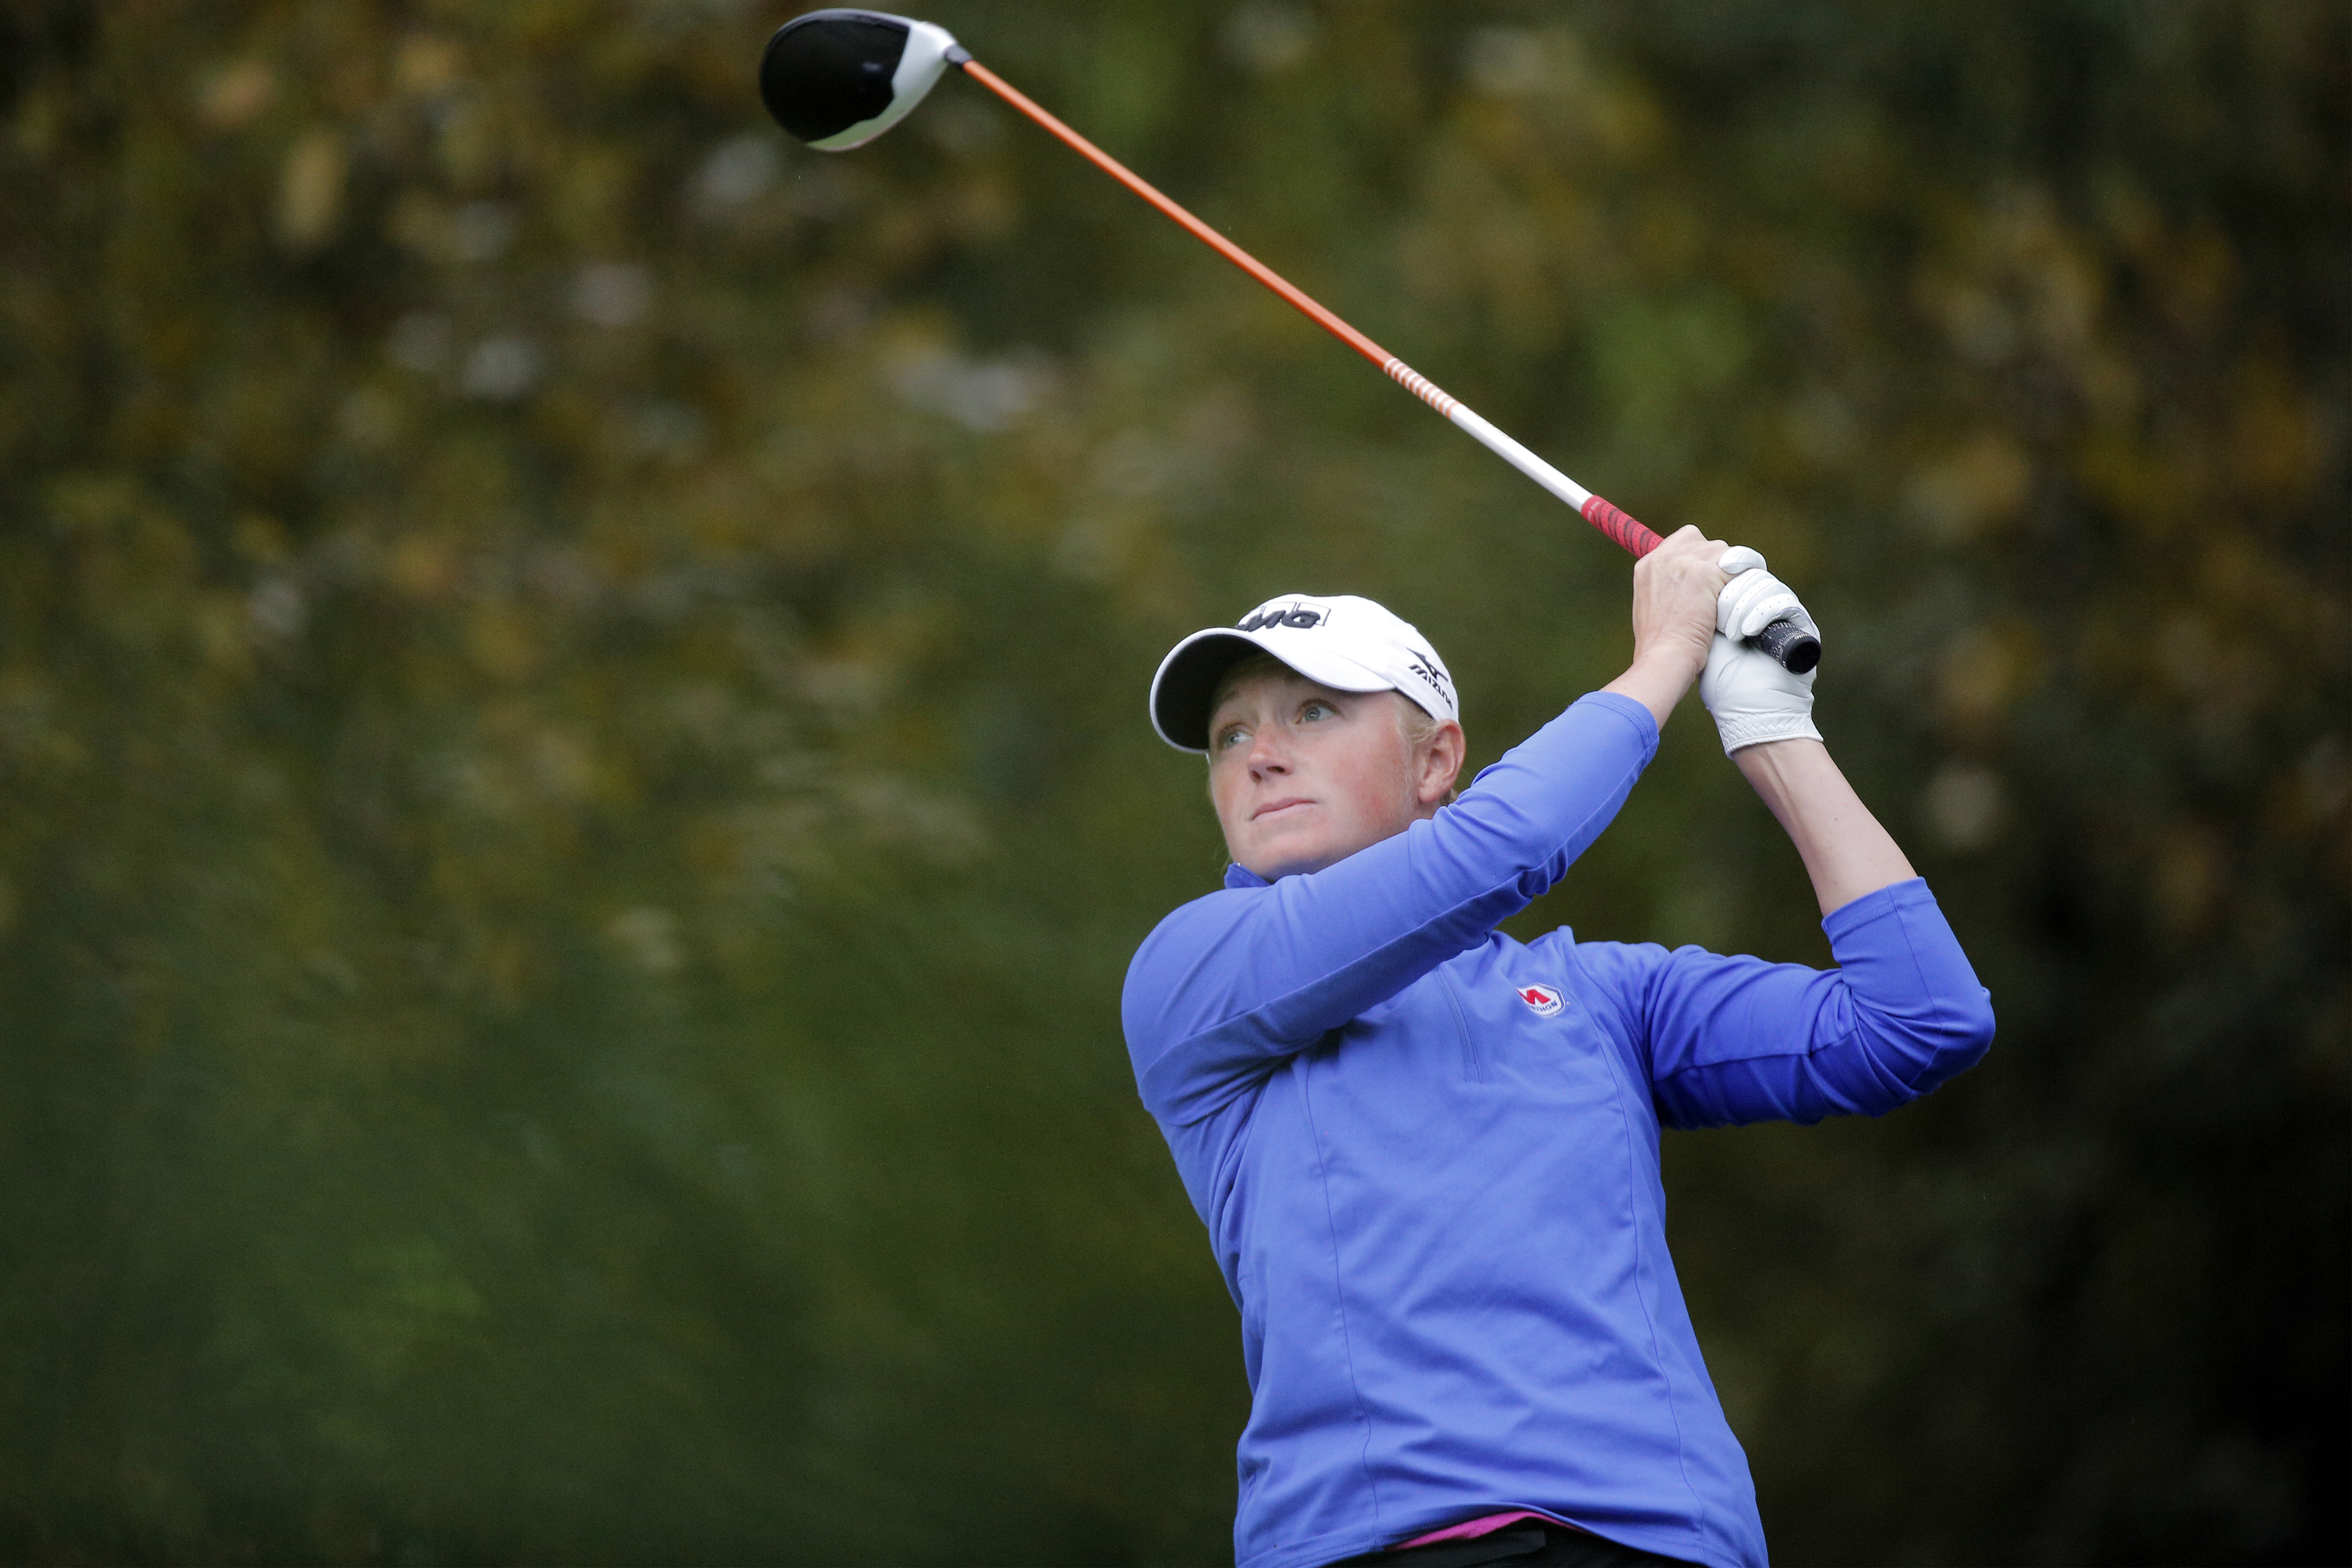 Stacy Lewis, of US, follows her ball after playing on the 14th hole during the second round of the Evian Championship women's golf tournament in Evian, eastern France, Friday, Sept. 16, 2016. (AP Photo/Laurent Cipriani)